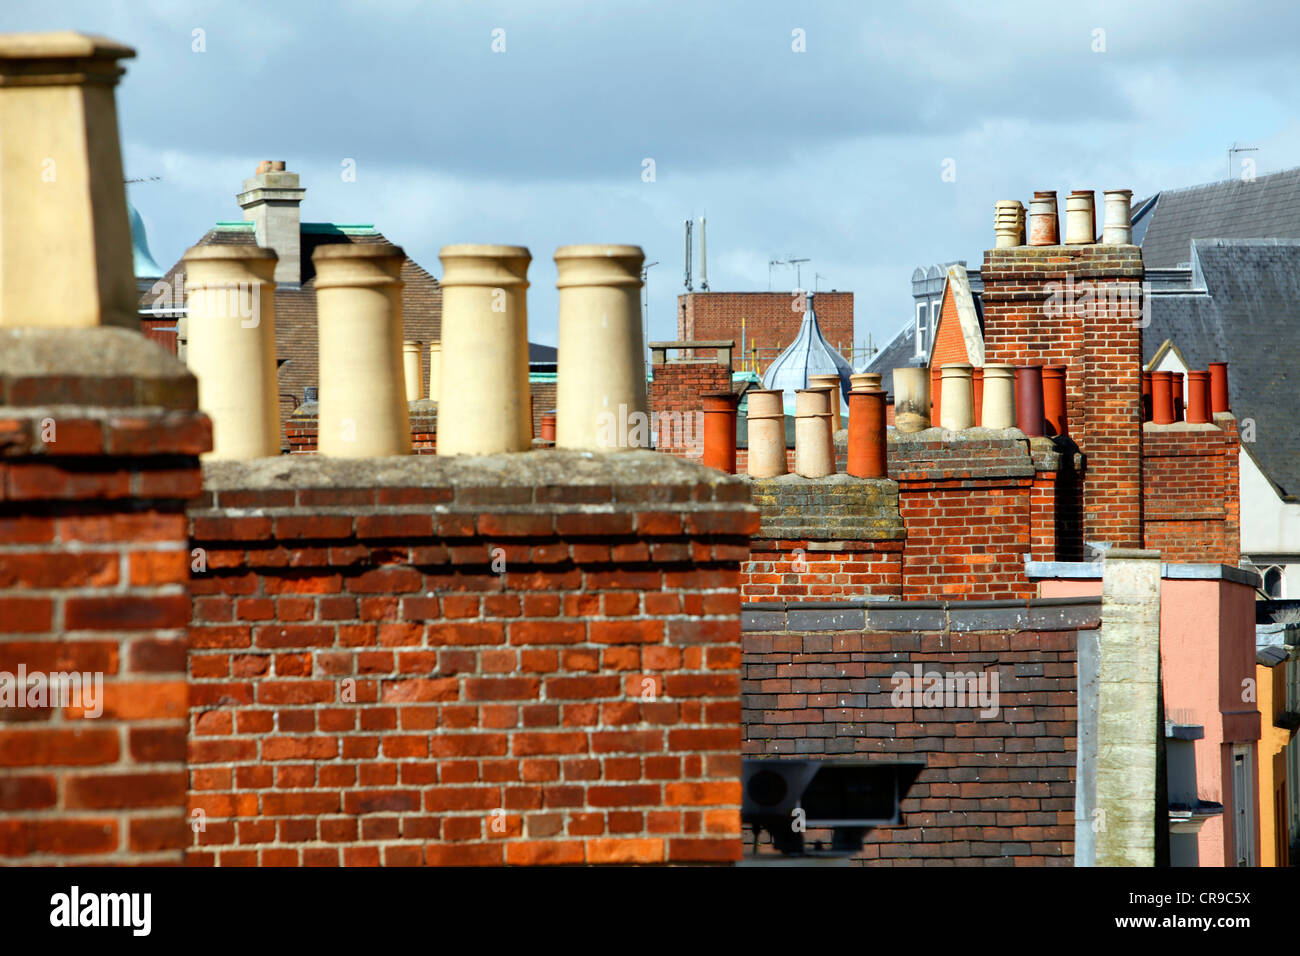 Typical chimneys on roofs of houses in Oxford, Oxfordshire, UK, Europe Stock Photo